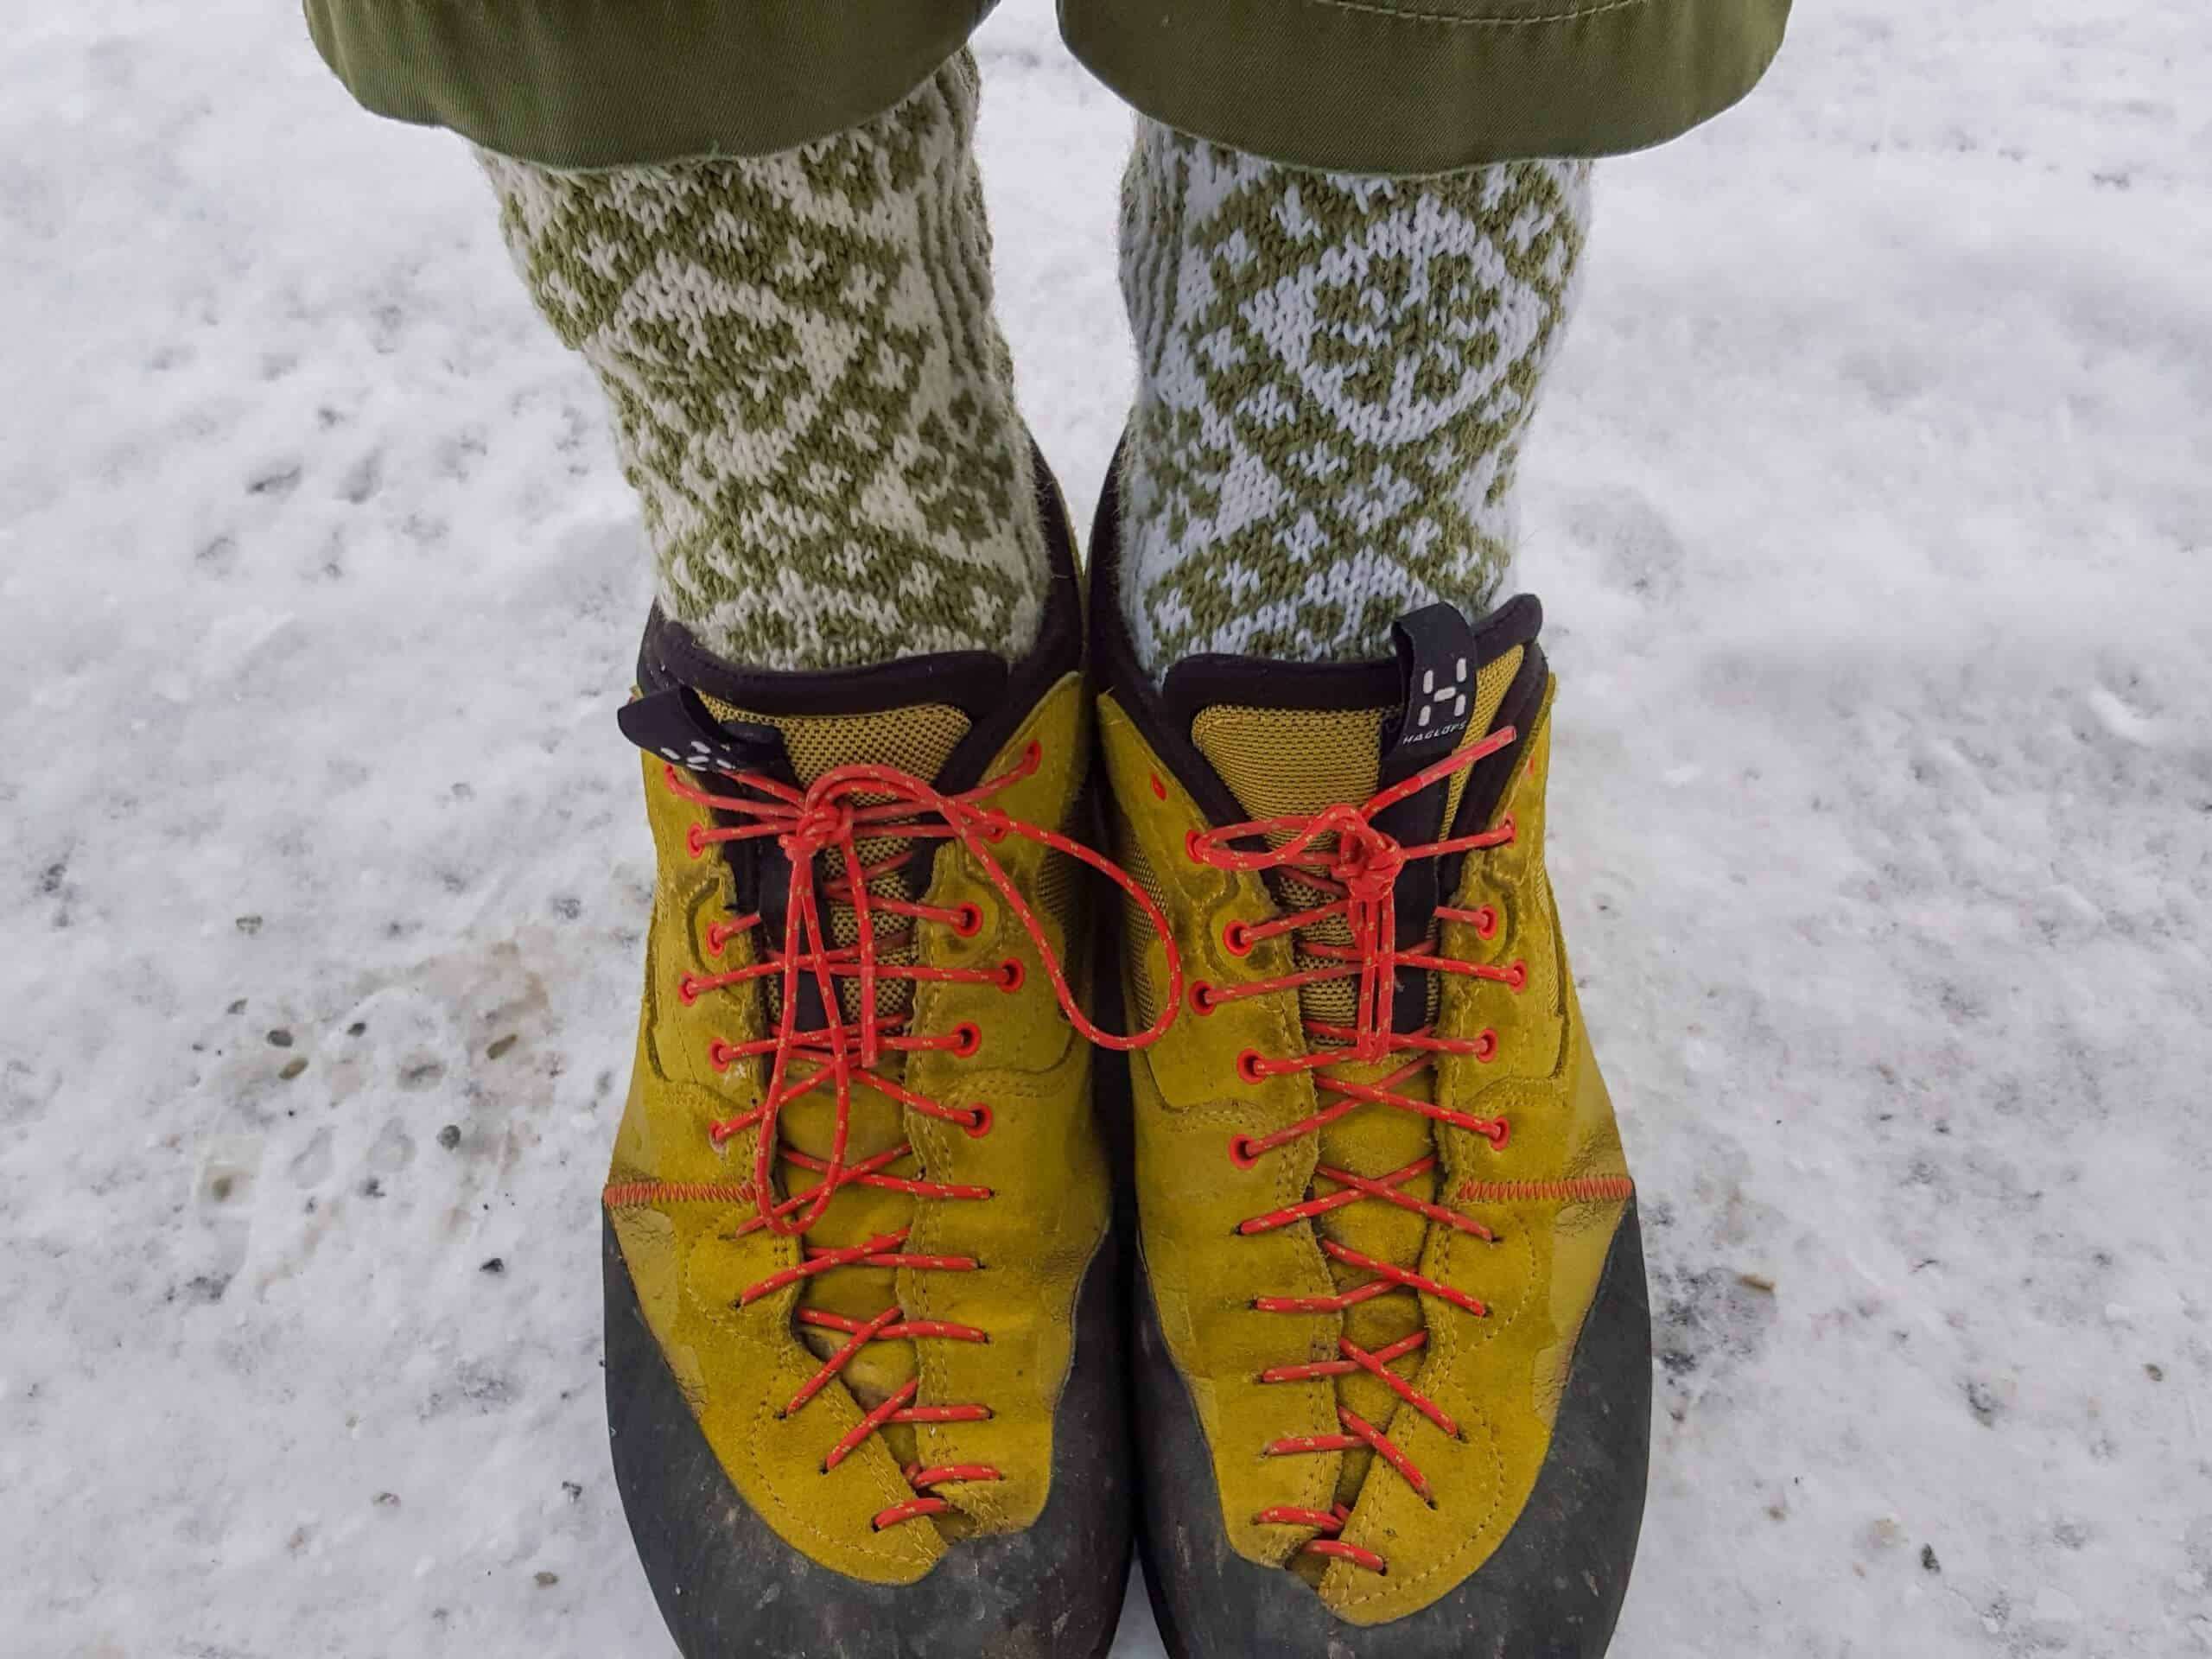 Woman wearing some of the best socks for ice fishing standing on frozen lake wearing winter boots